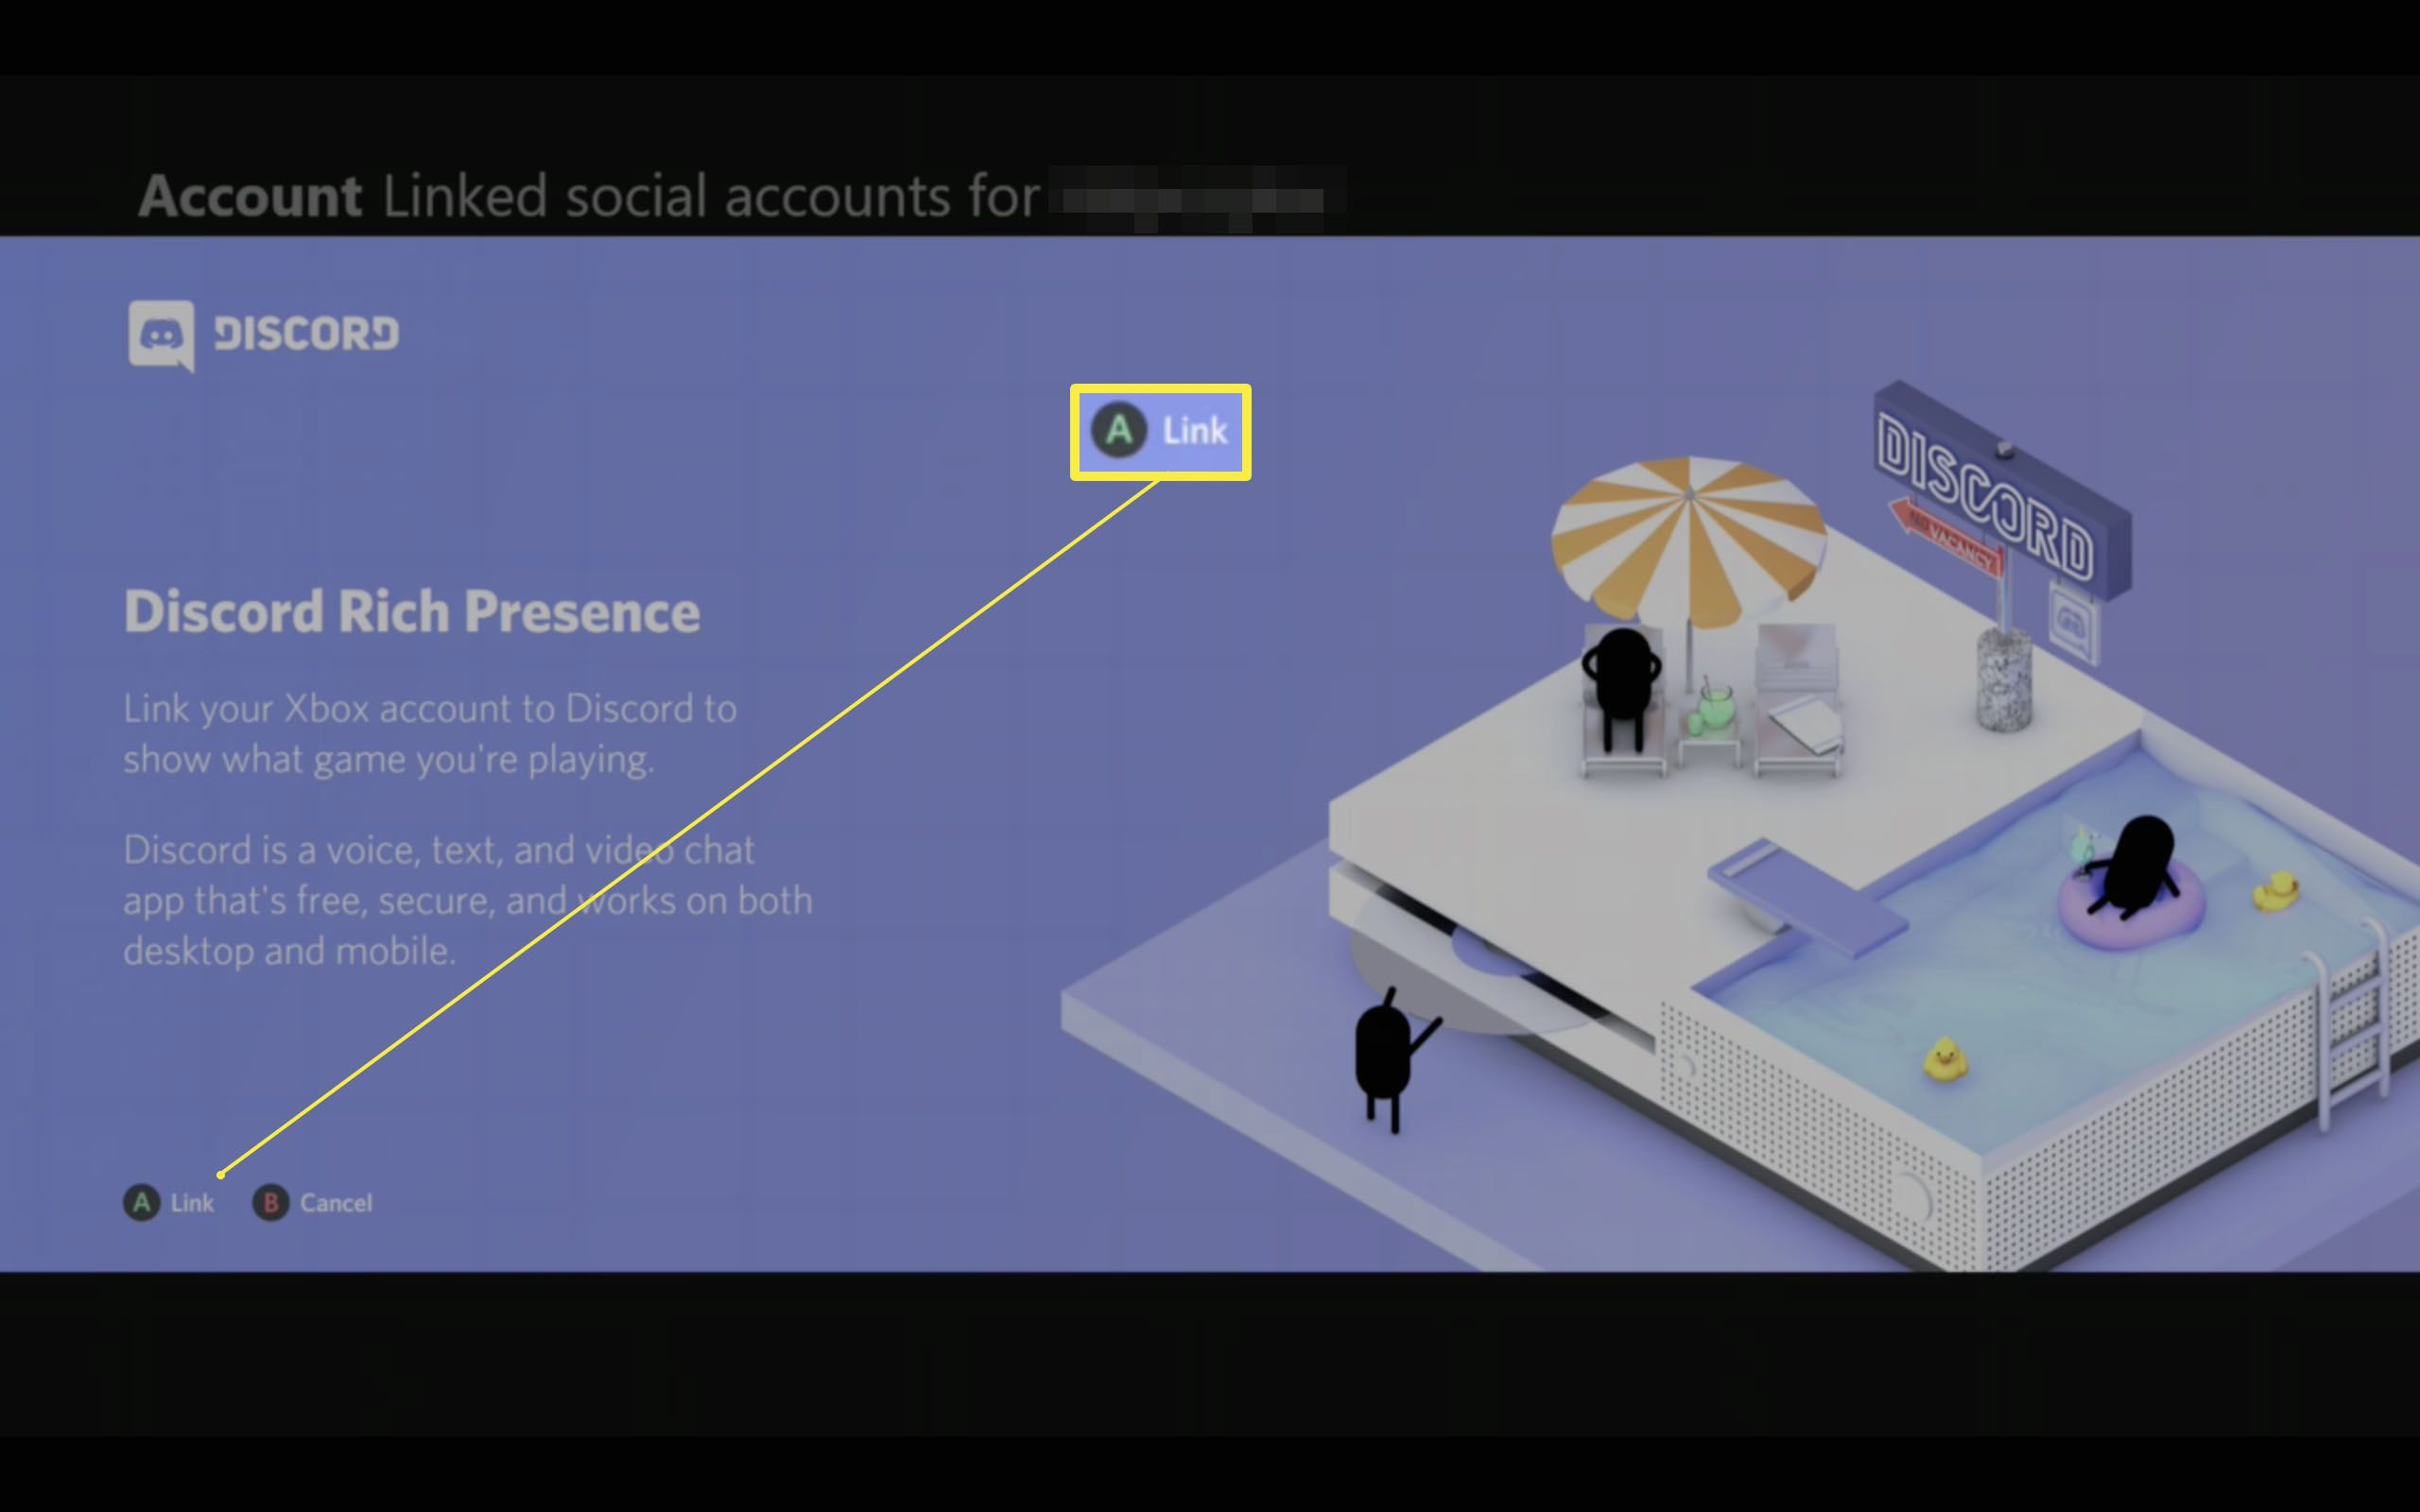 Xbox One Linked social accounts page with Discord setup highlighted